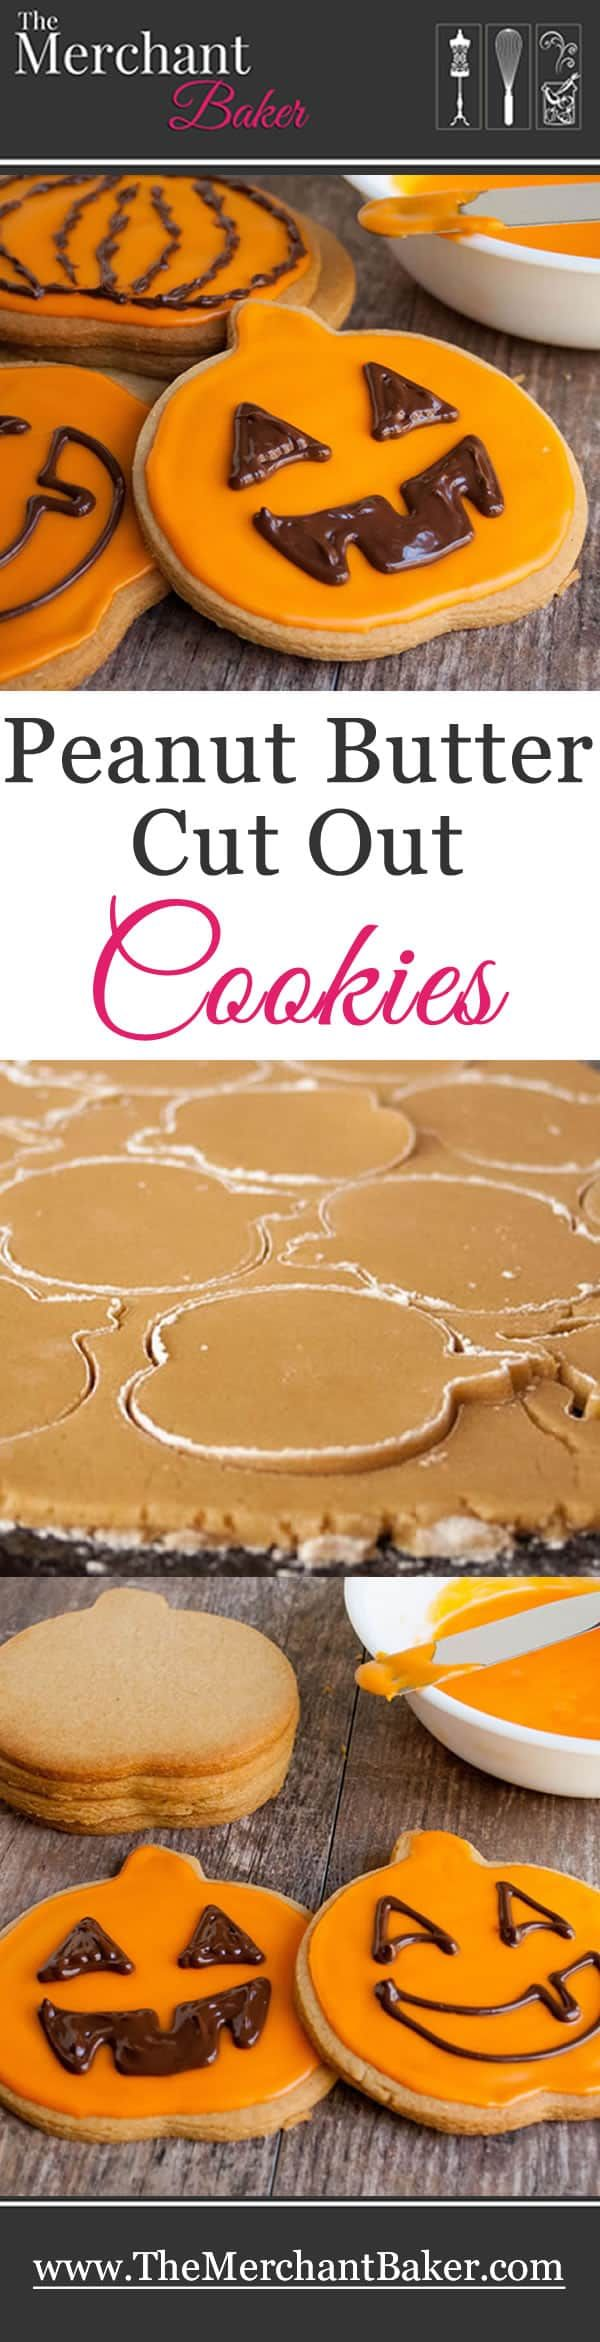 """Making these Peanut Butter Cut Out Cookiesis aHalloweentradition from my childhood.The recipe was clipped(about a million years ago)from a Cleveland newspaper, The Plain Dealer. I remember the recipe was called, """"Peanutty Pumpkin Cookies,"""" and employed the use"""